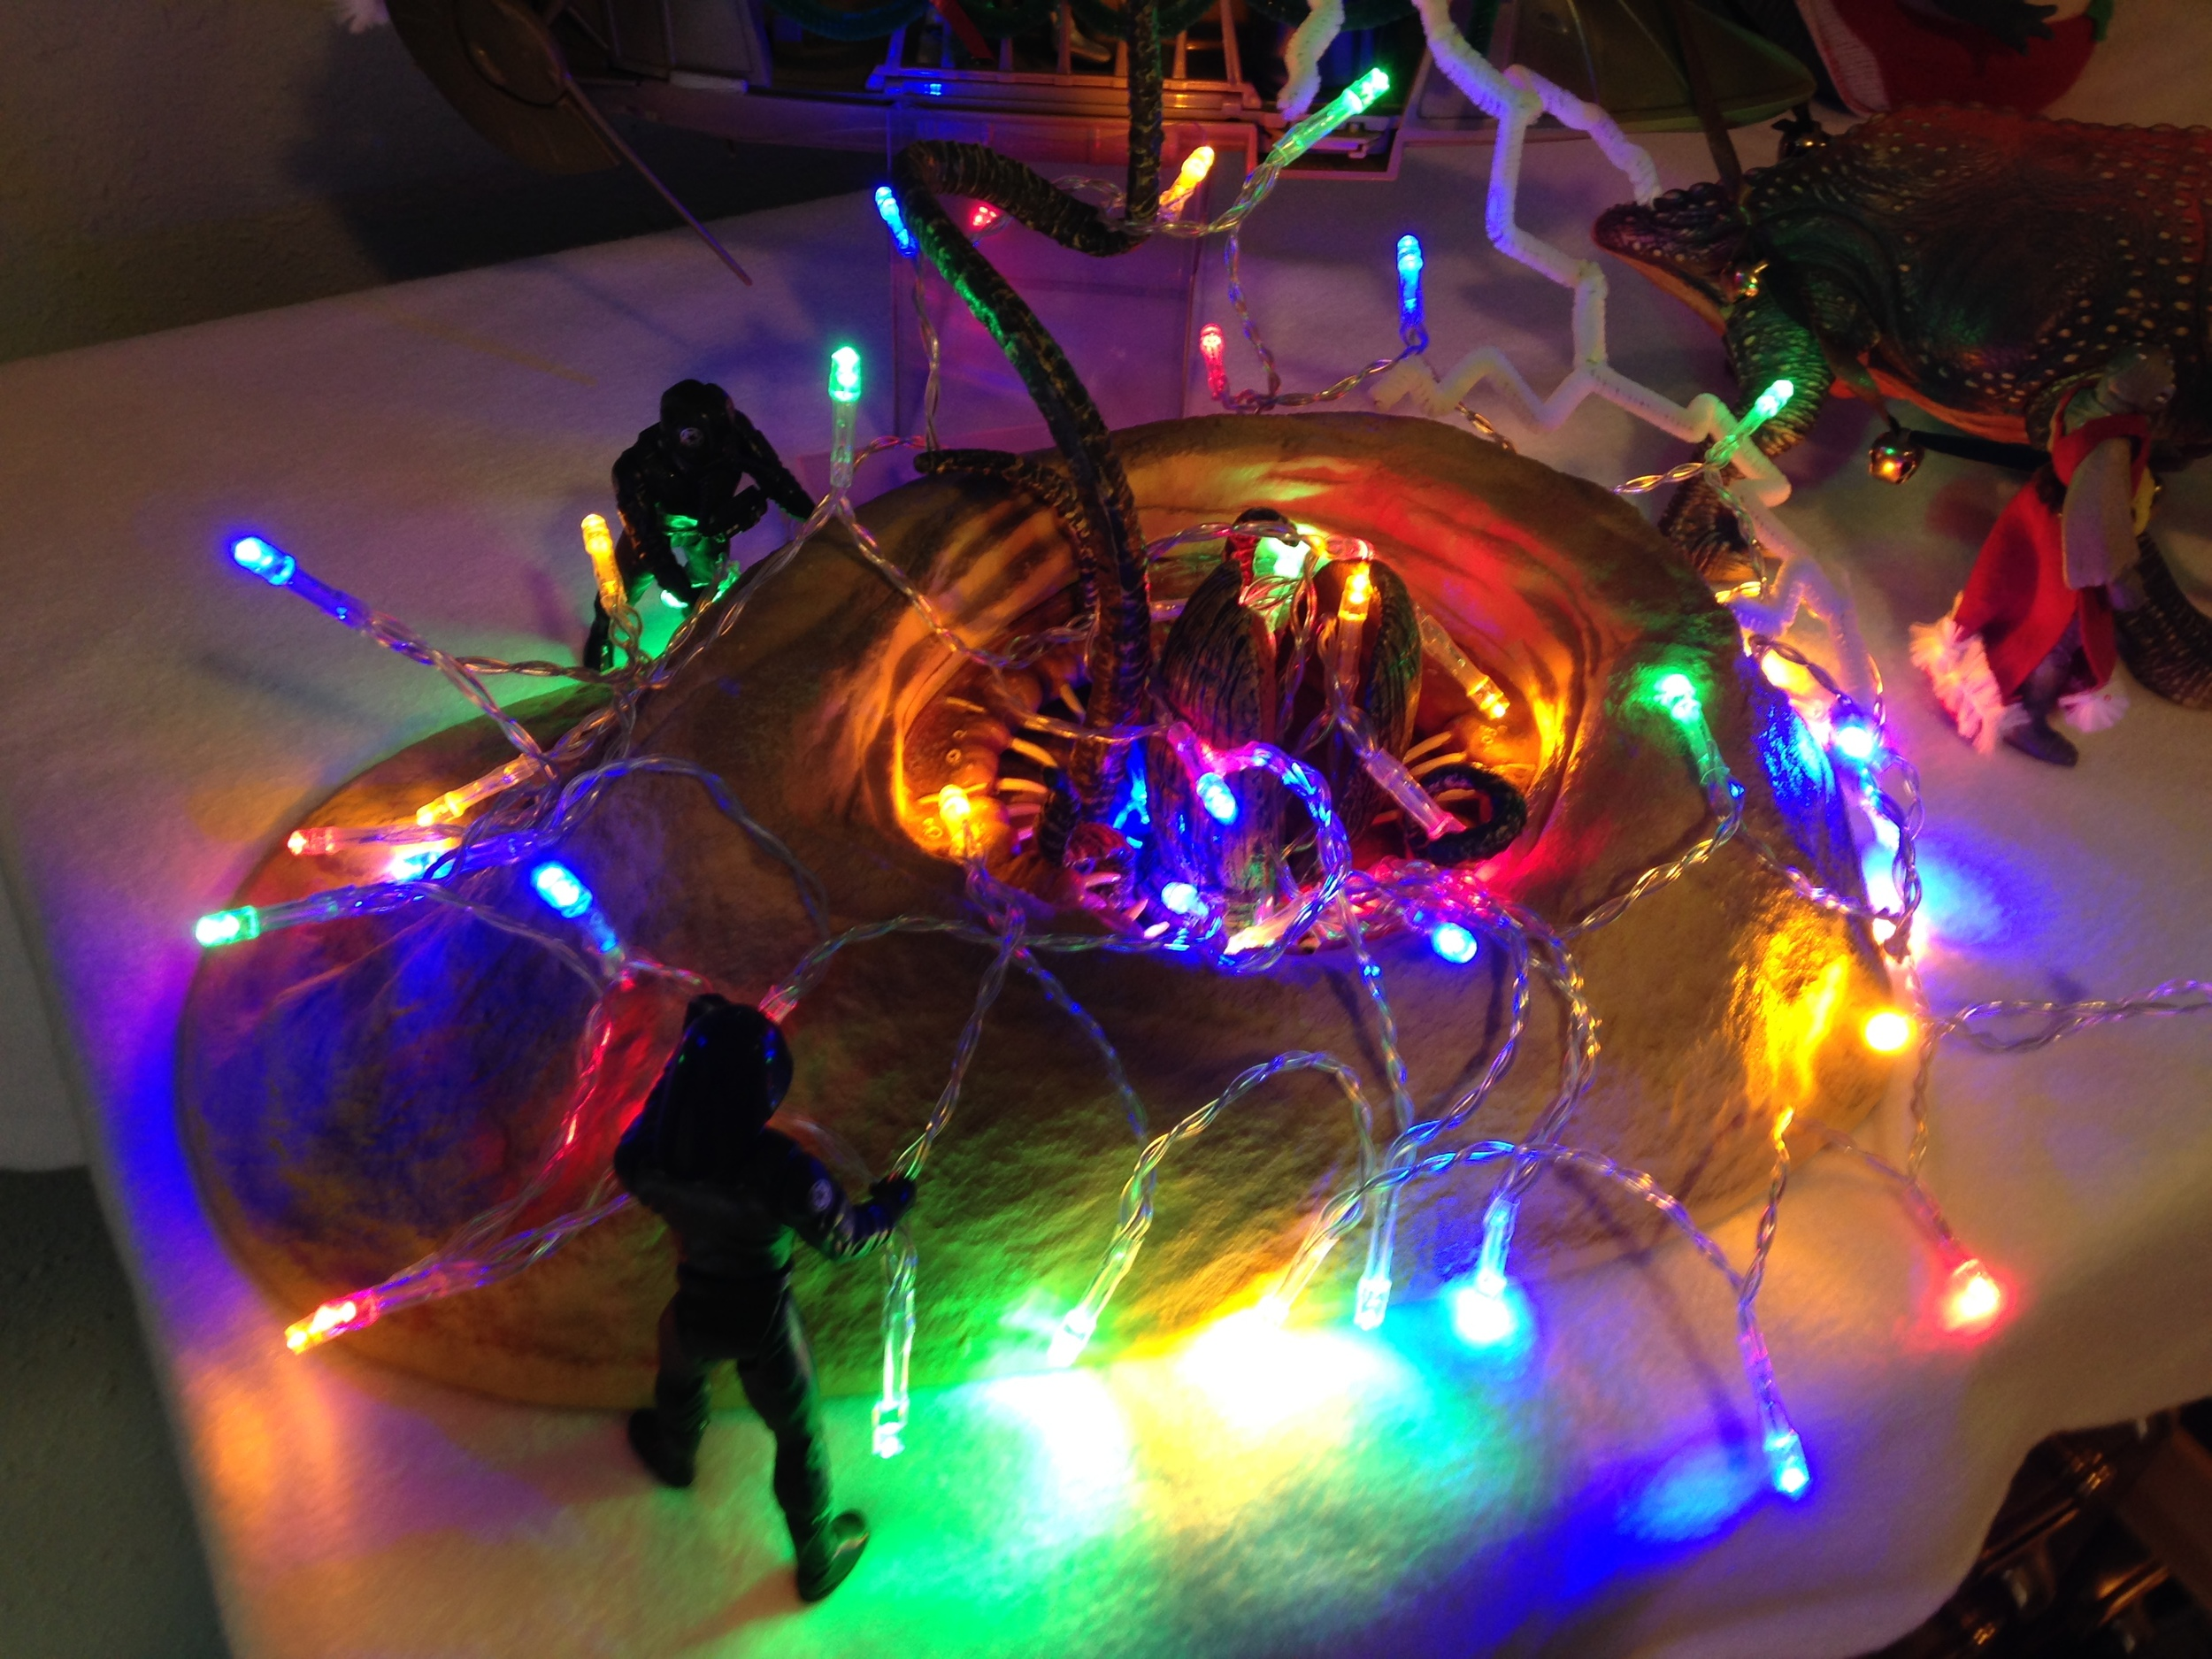 These Imperial officers are helping decorate the Sarlacc. Hopefully they don't get too close...